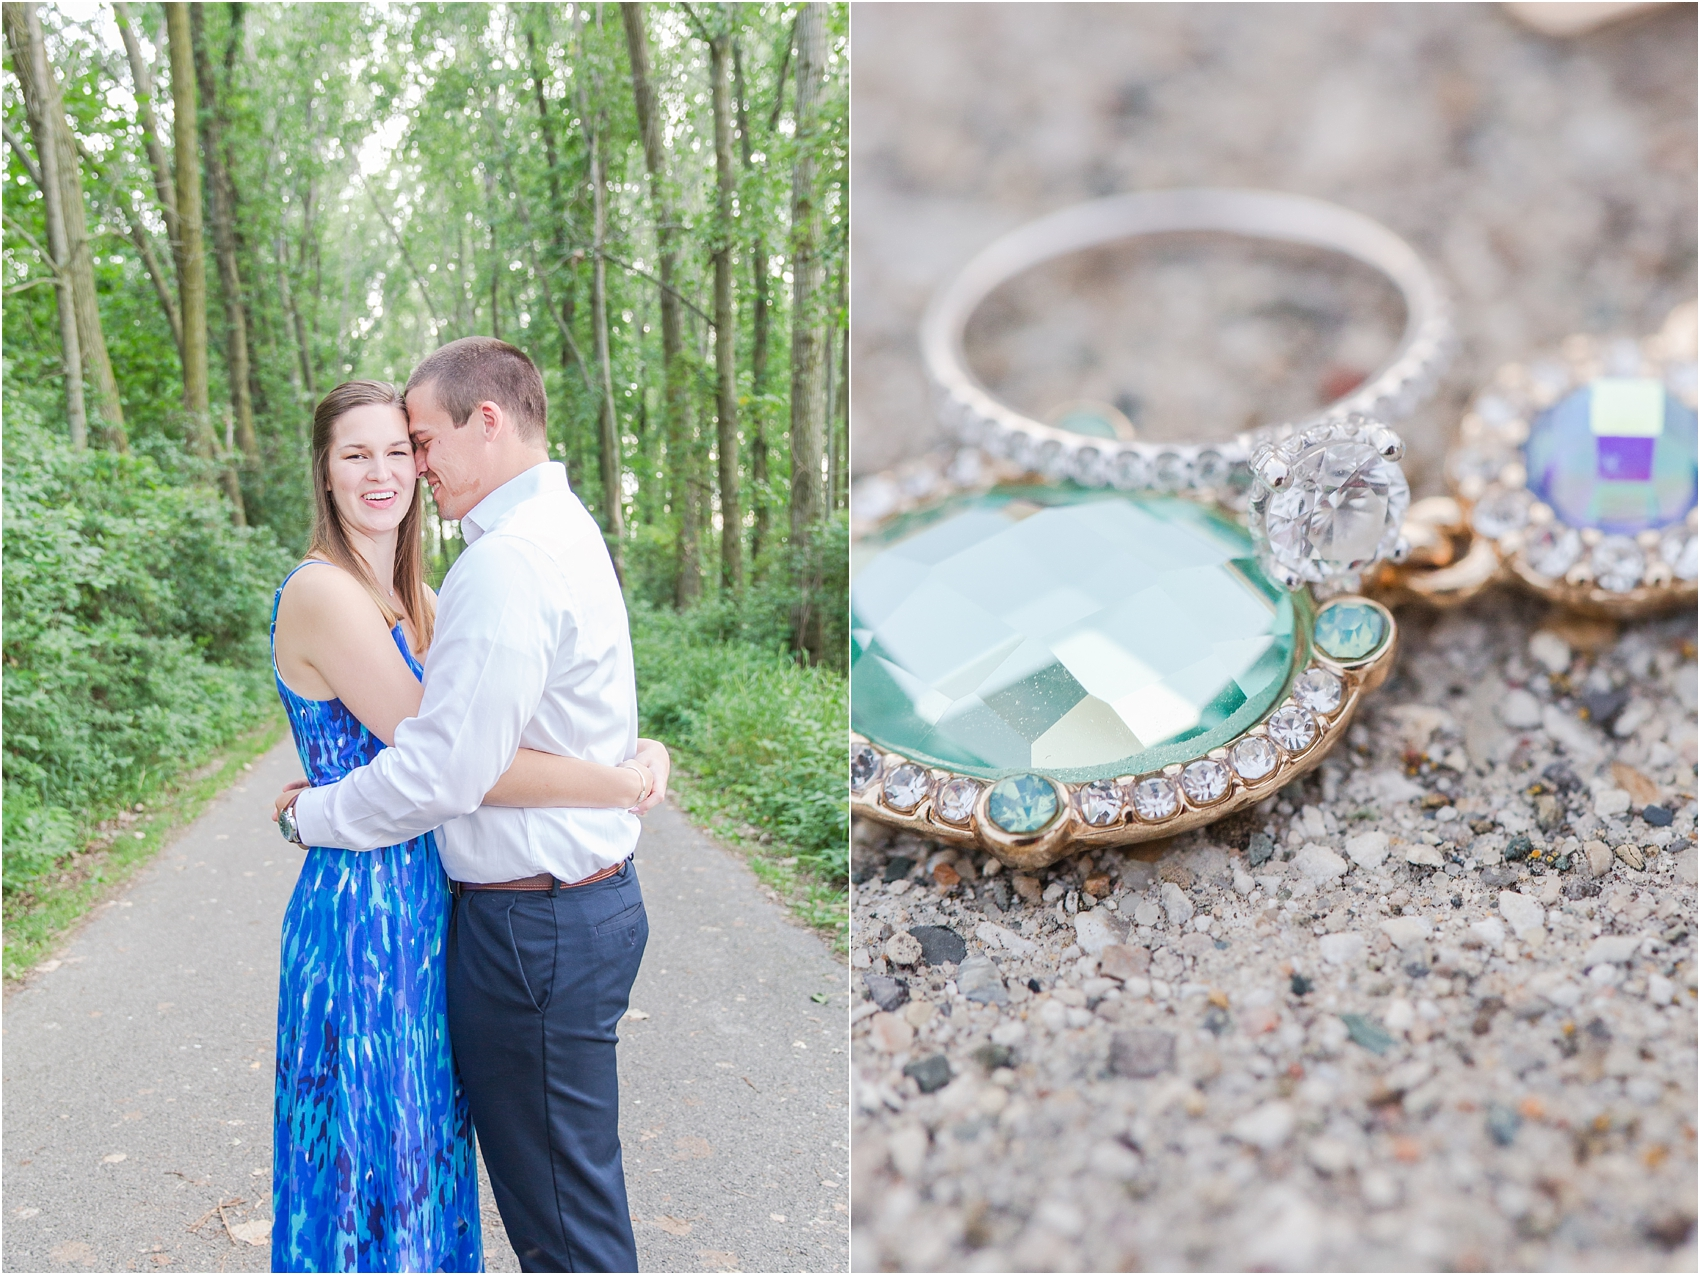 light-hearted-sunset-engagement-photos-at-the-beach-in-oregon-oh-by-courtney-carolyn-photography_0002.jpg